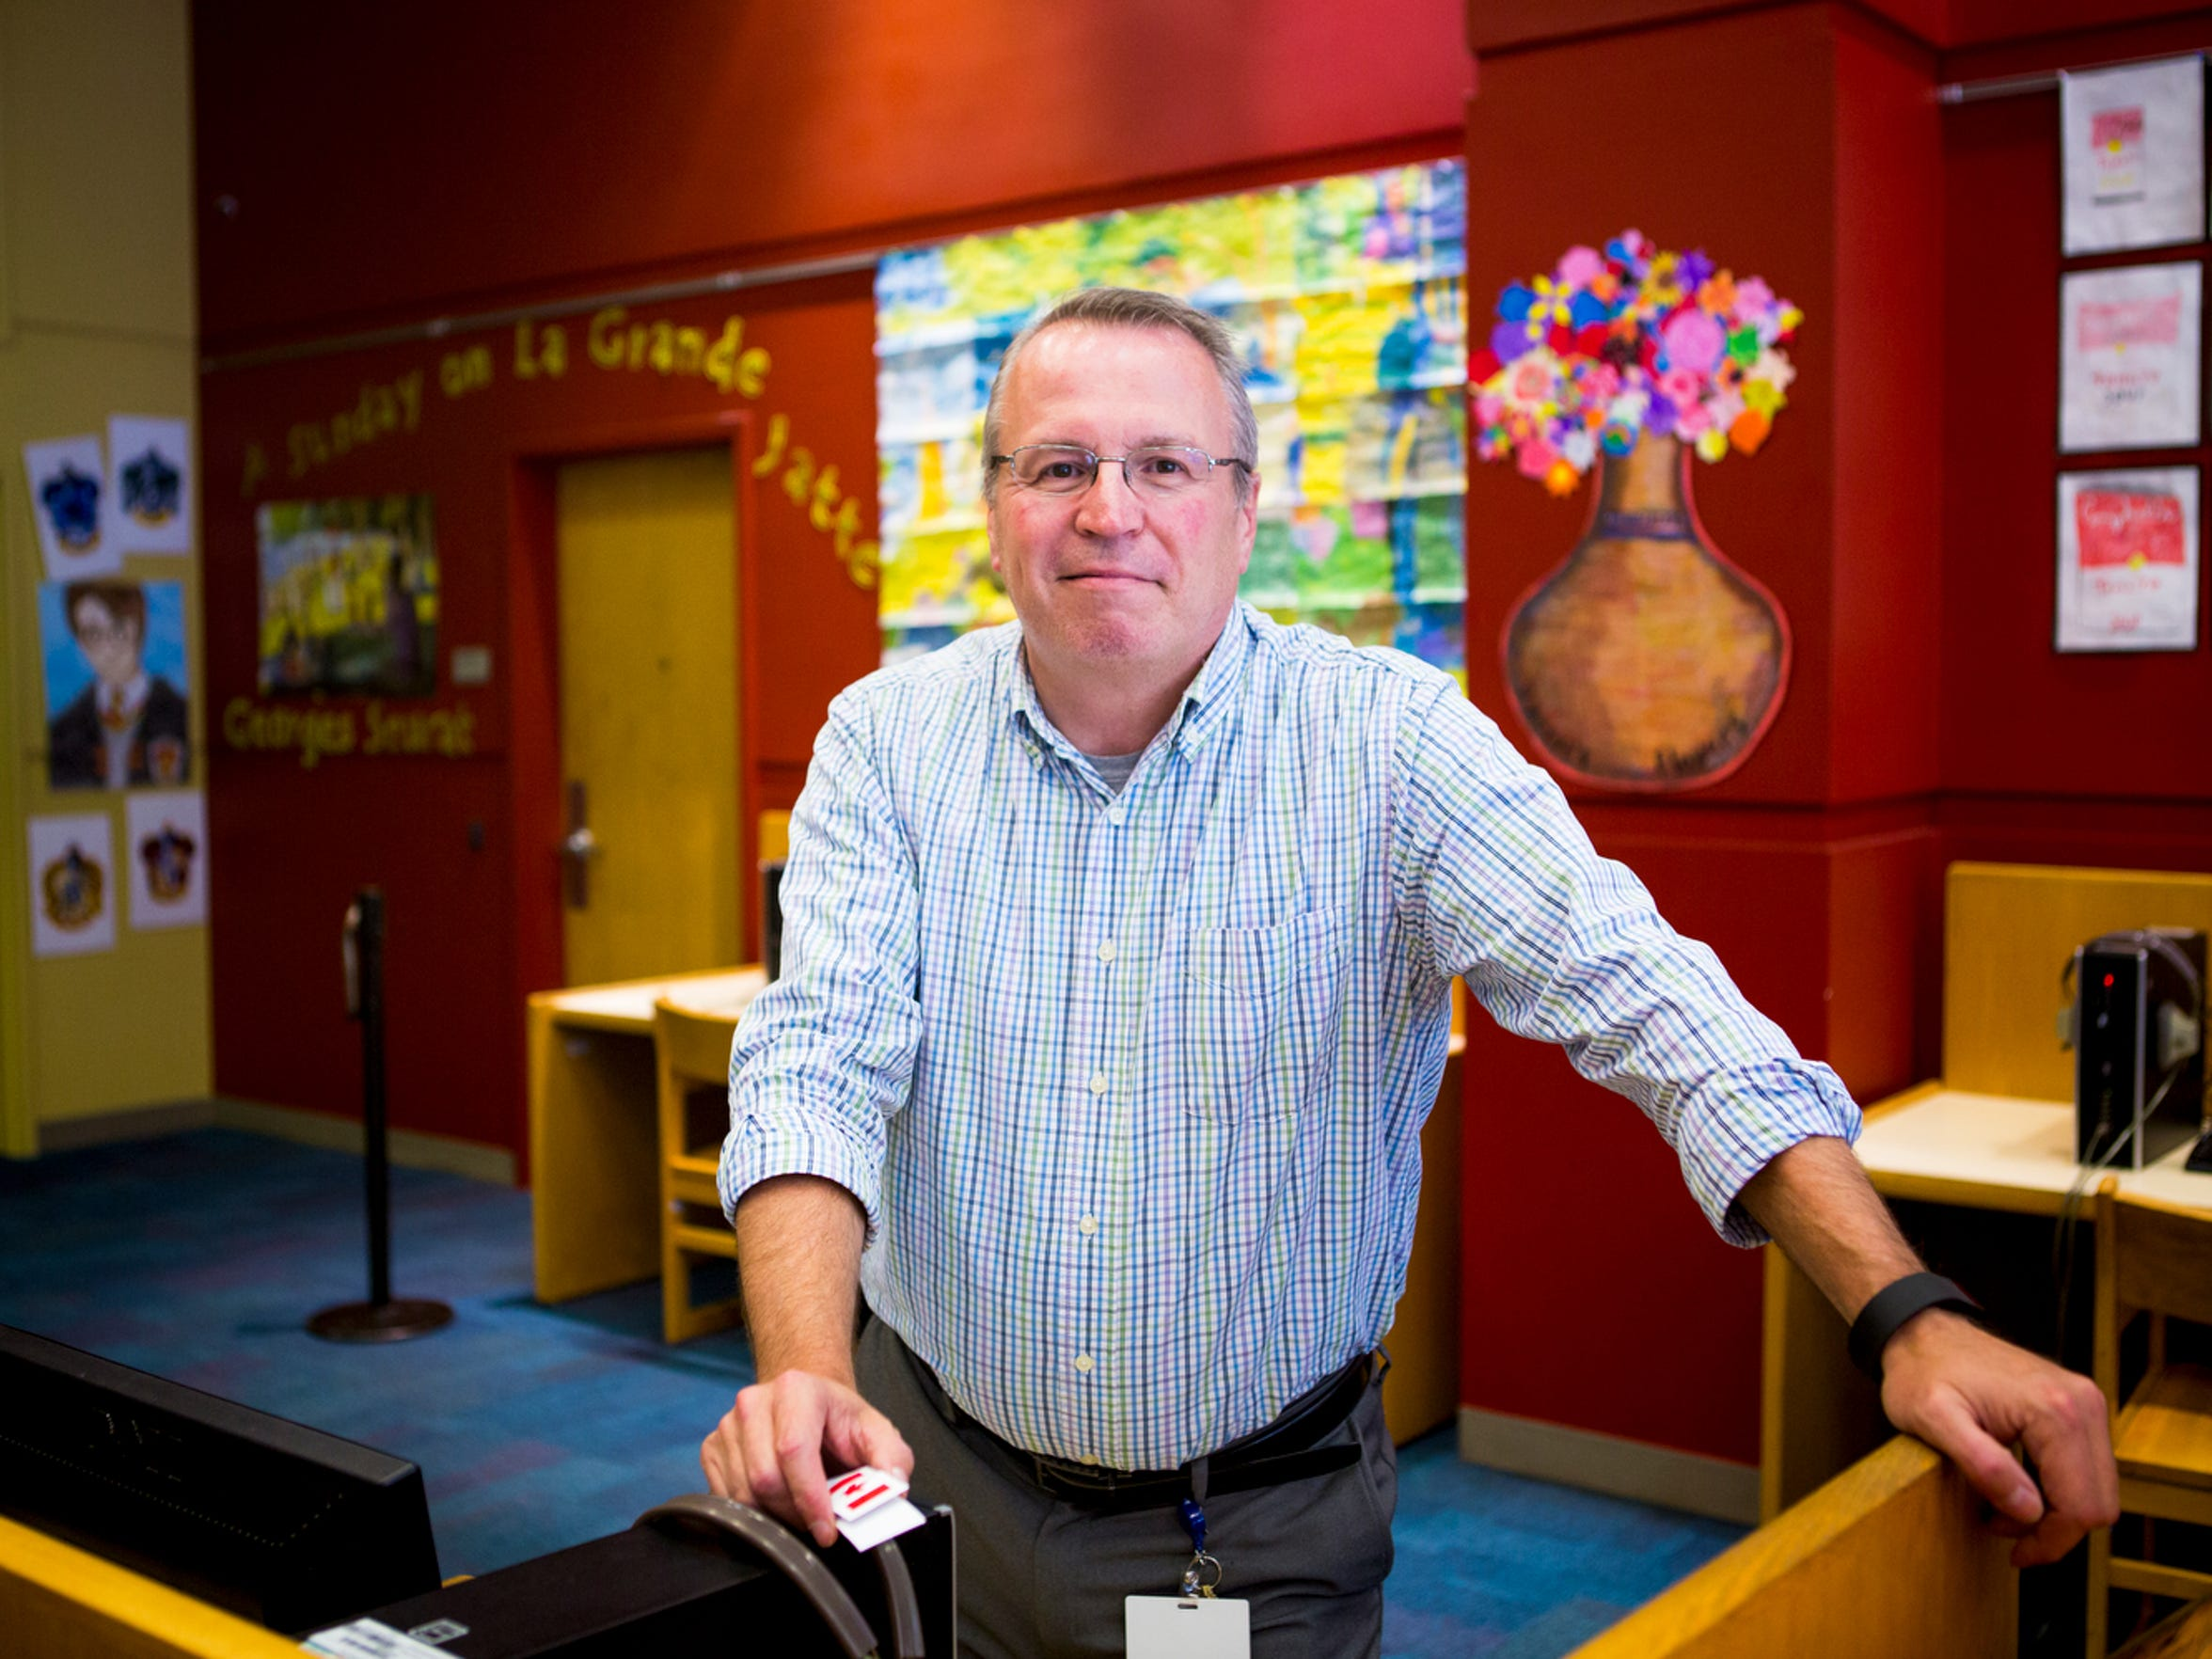 Keith Armour is the education and homework support manager at the The Public Library of Cincinnati and Hamilton County.